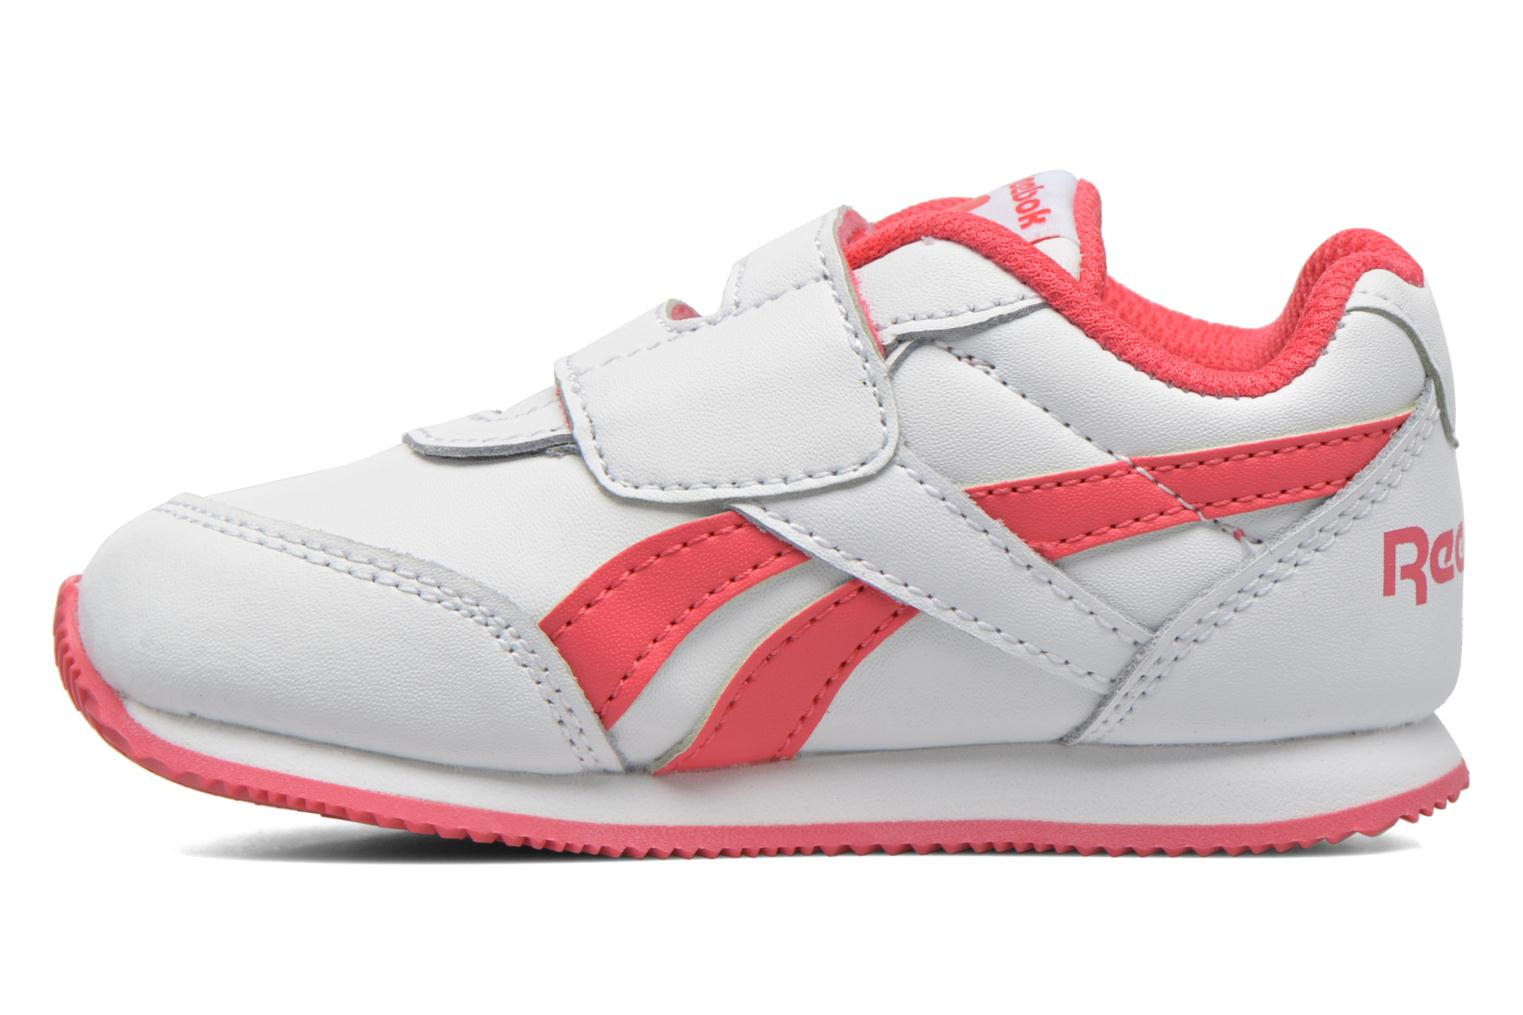 Reebok royal cljog 2 kc White/Fearless Pink